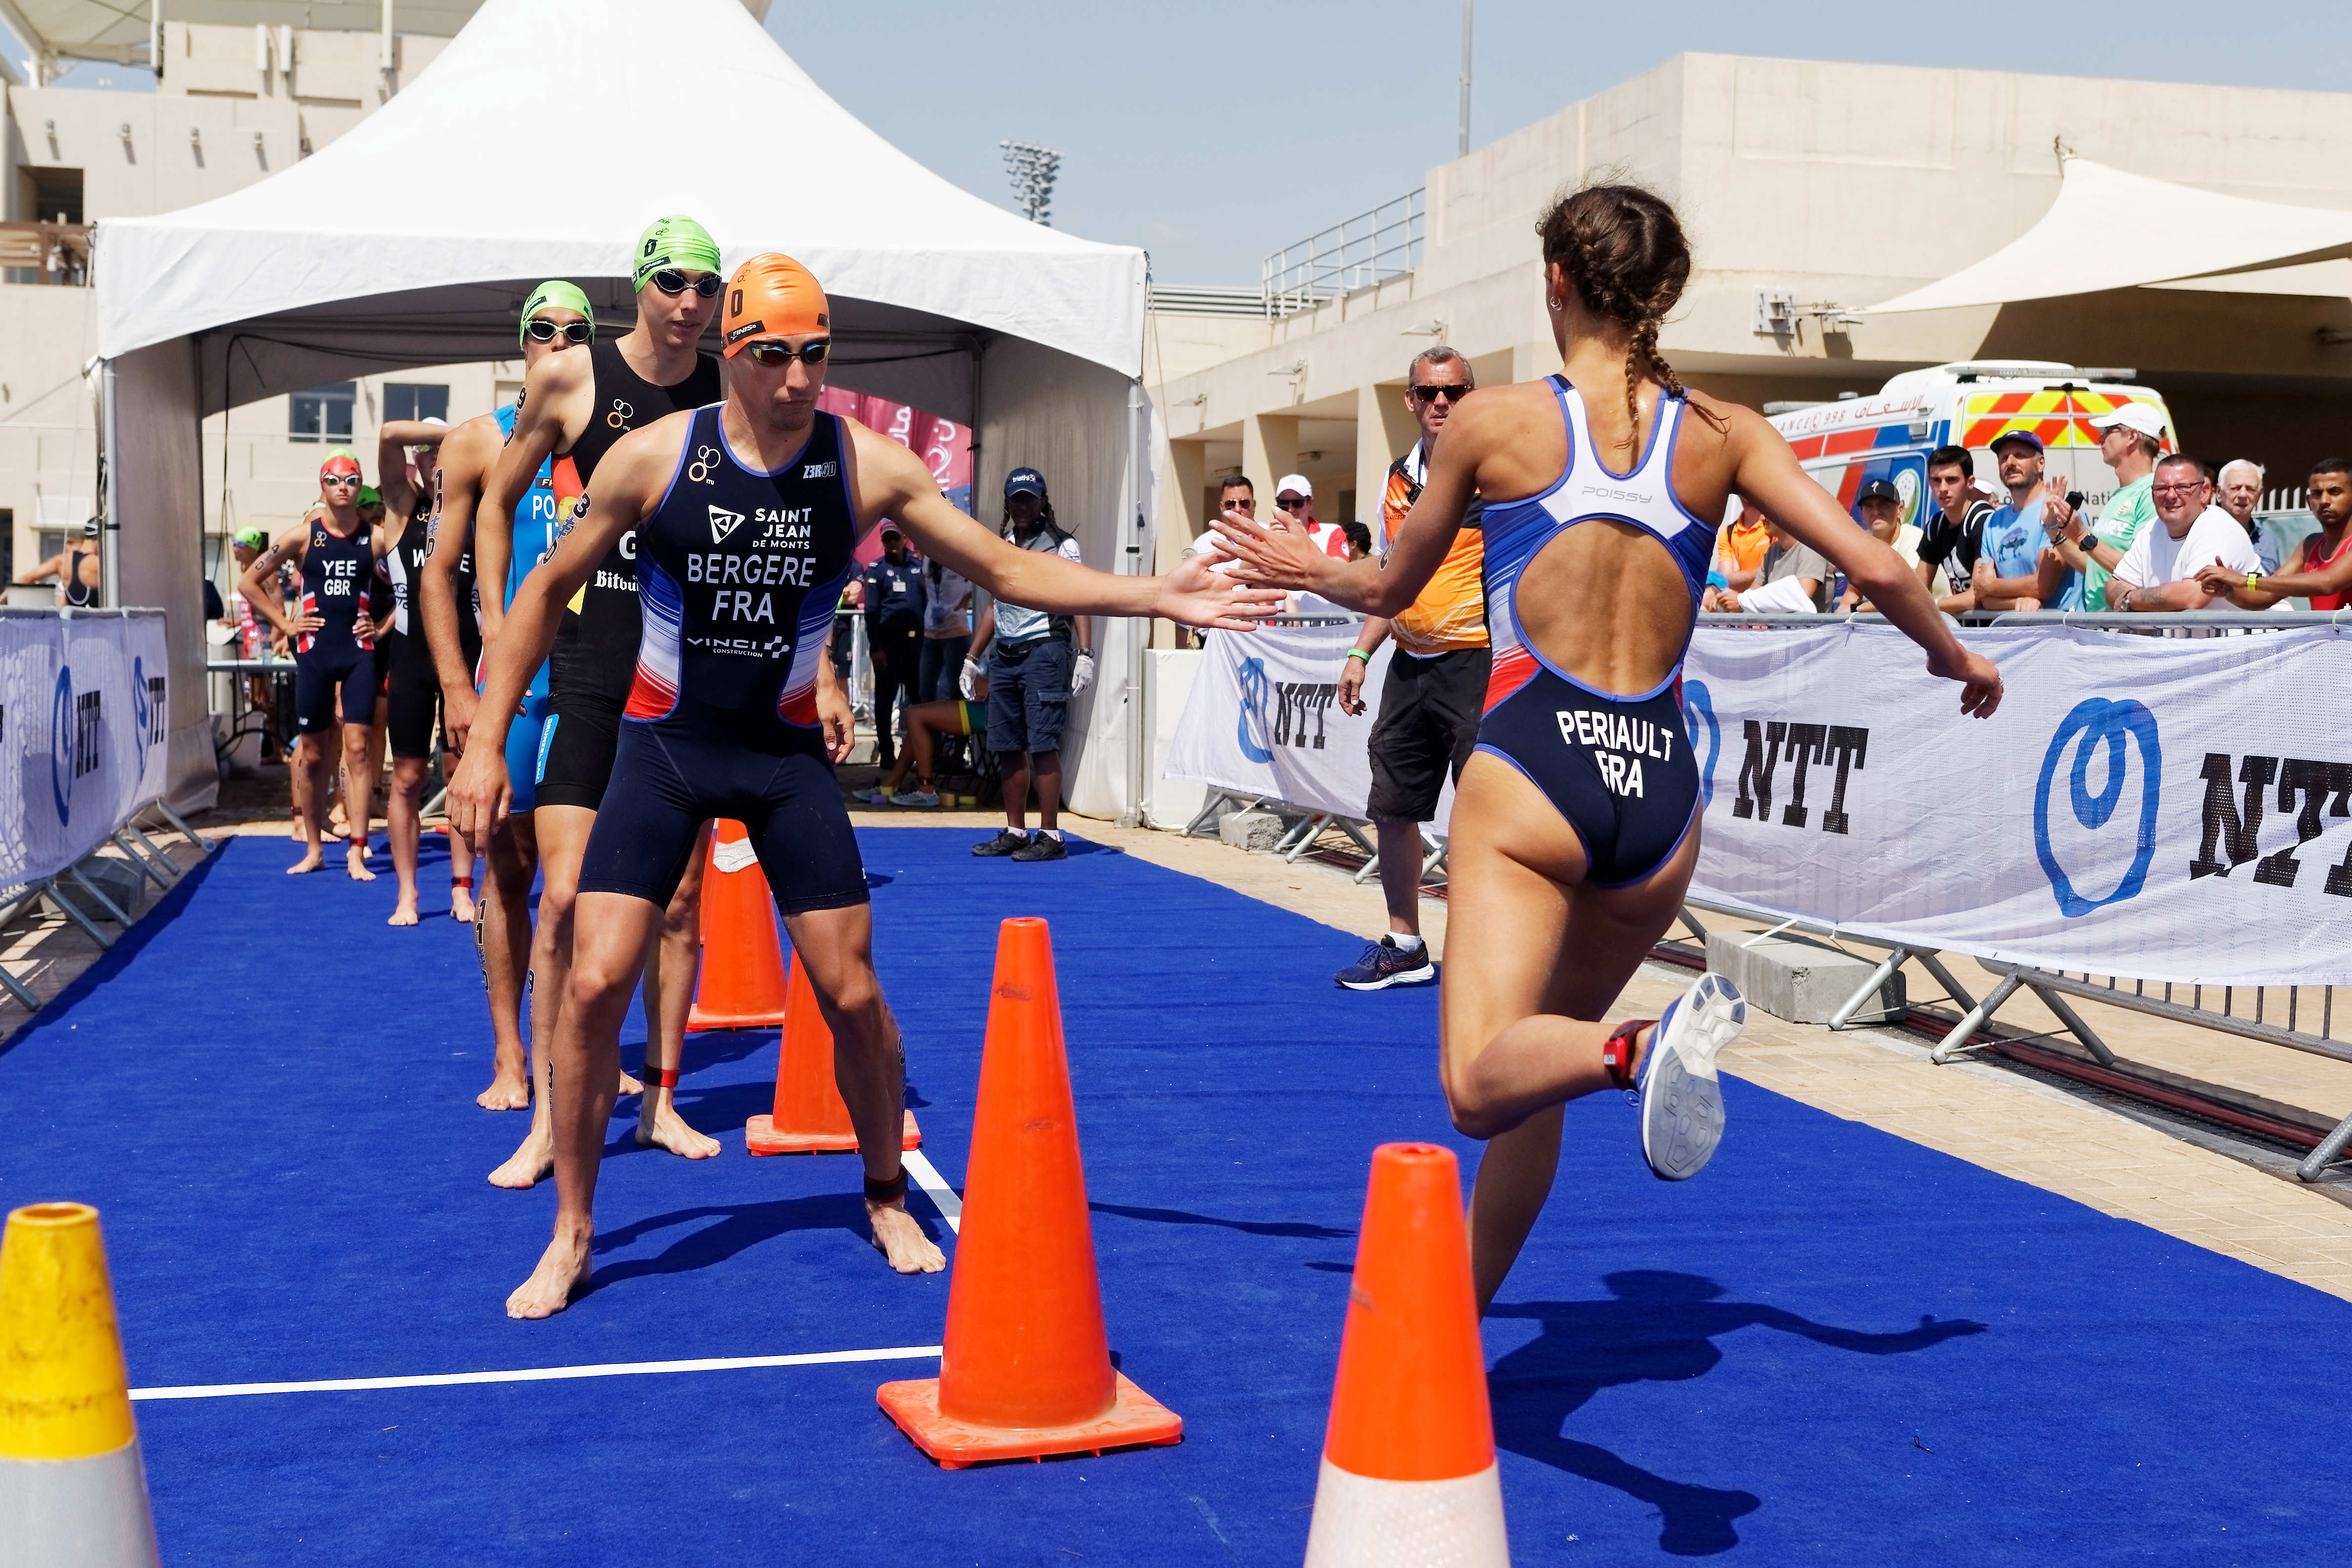 2019 Daman World Triathlon Mixed Relay Series Abu Dhabi